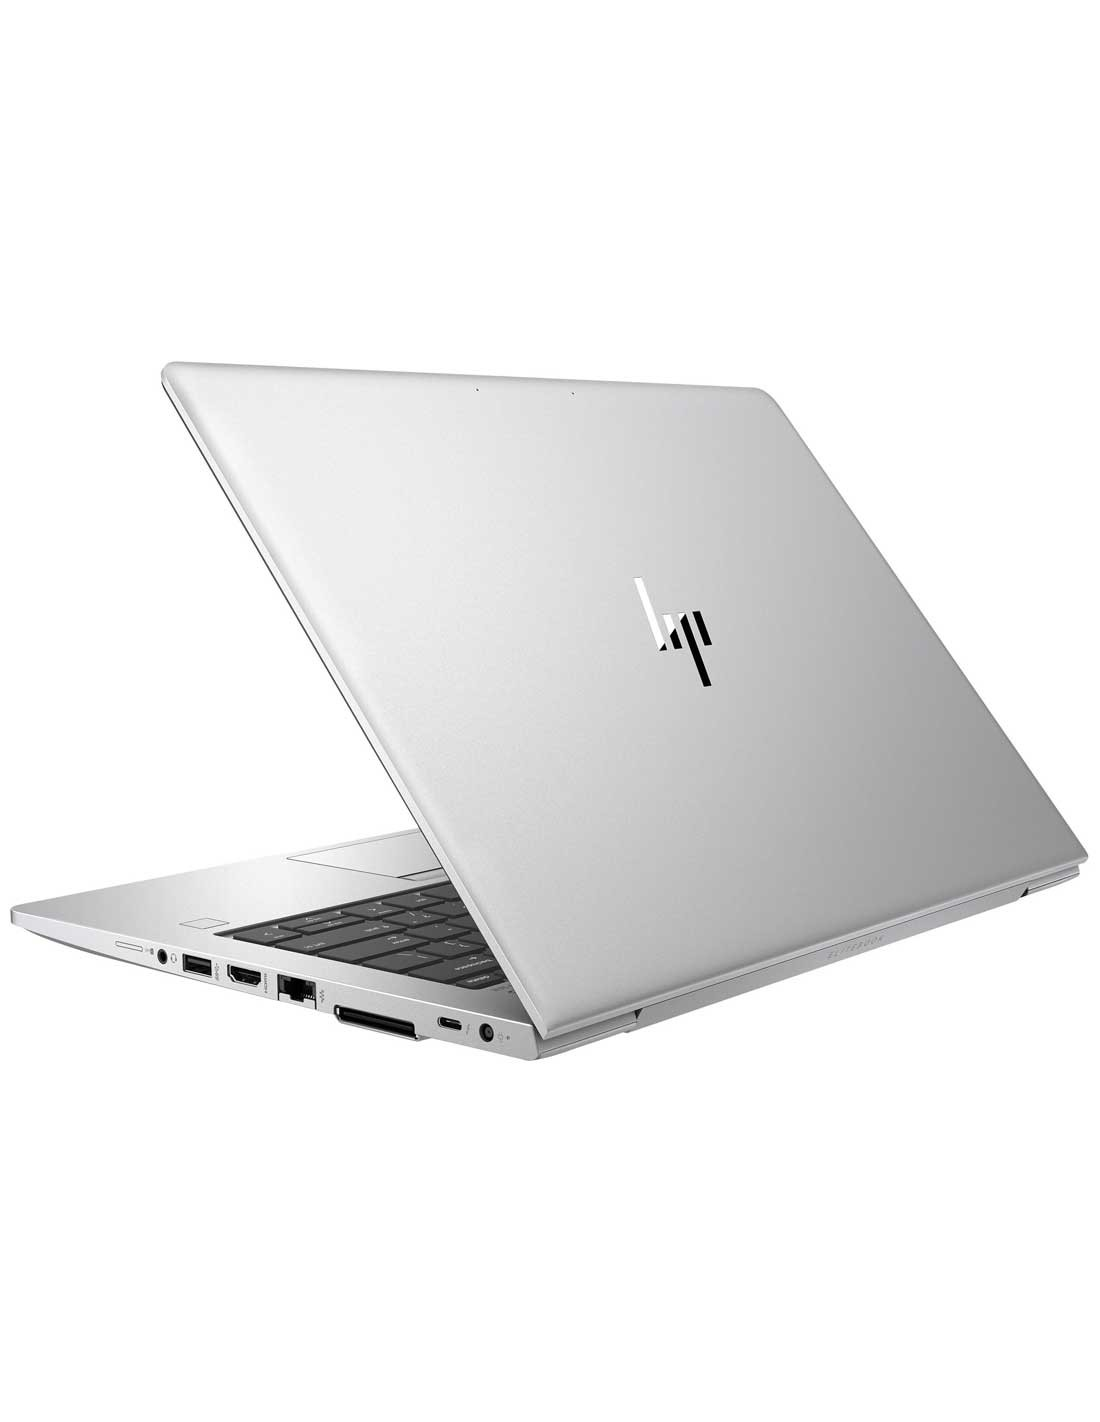 HP EliteBook 830 G5 Notebook 16GB images and photos in Dubai online store